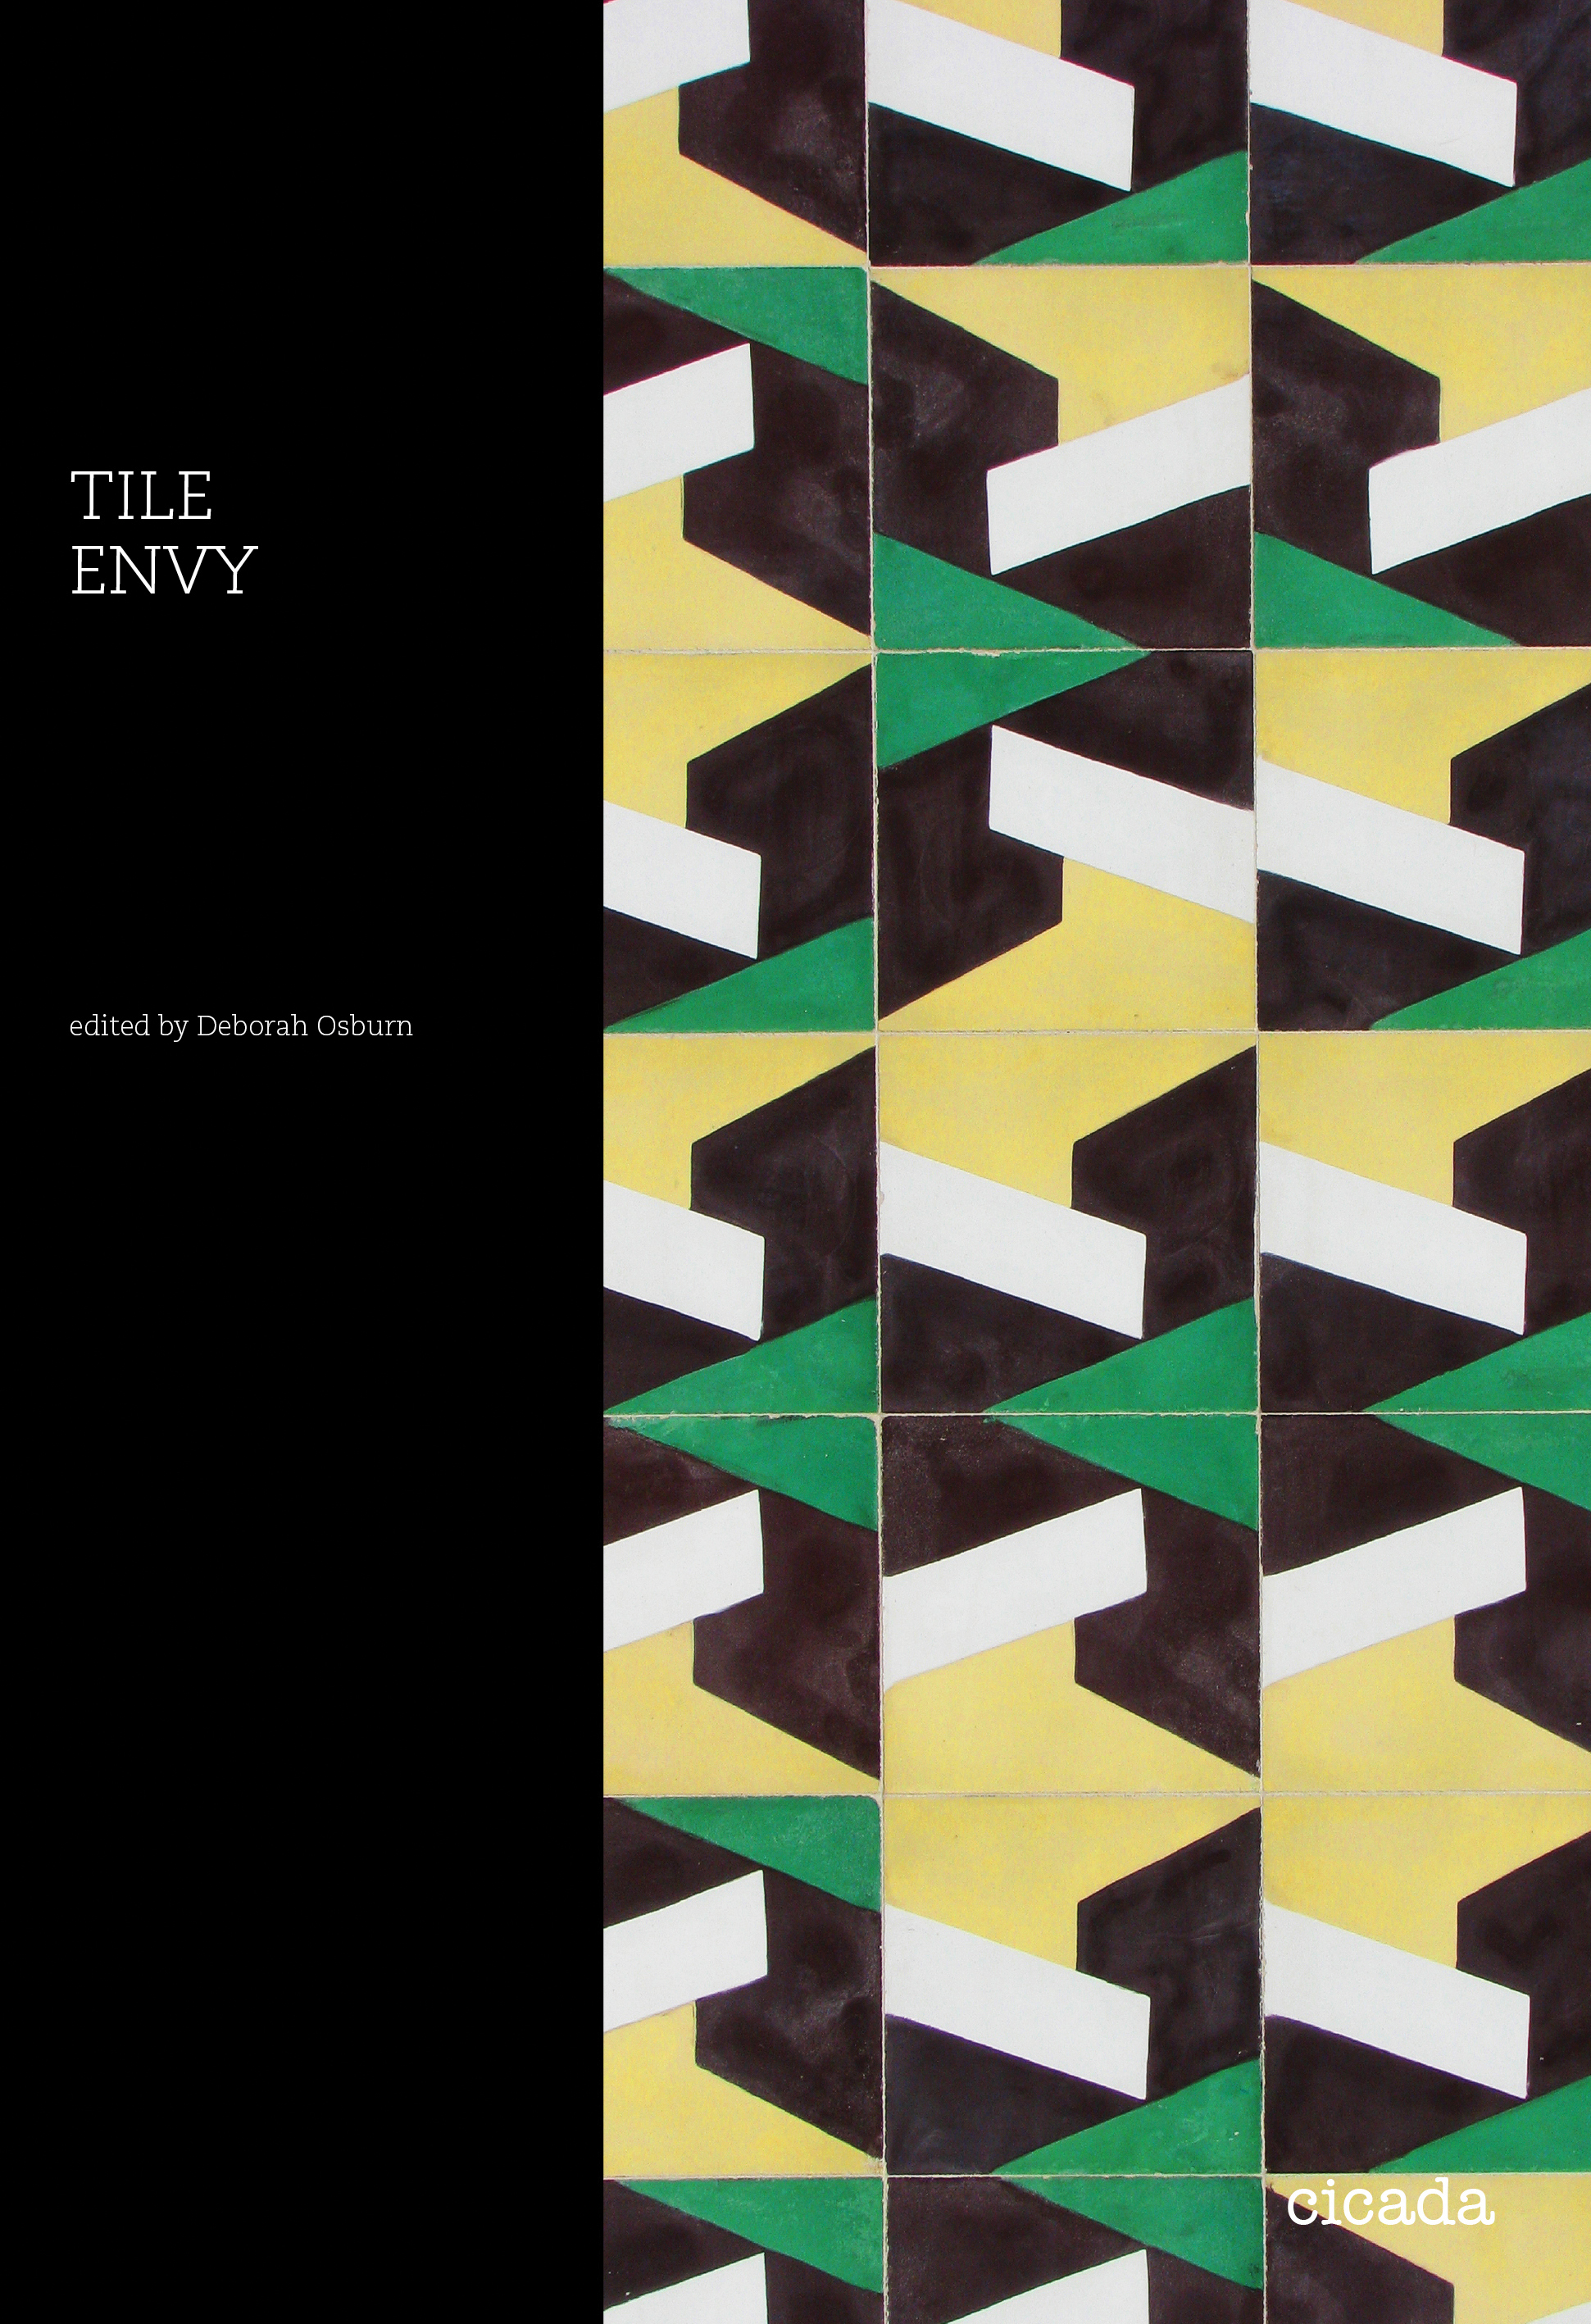 tile envy, the book